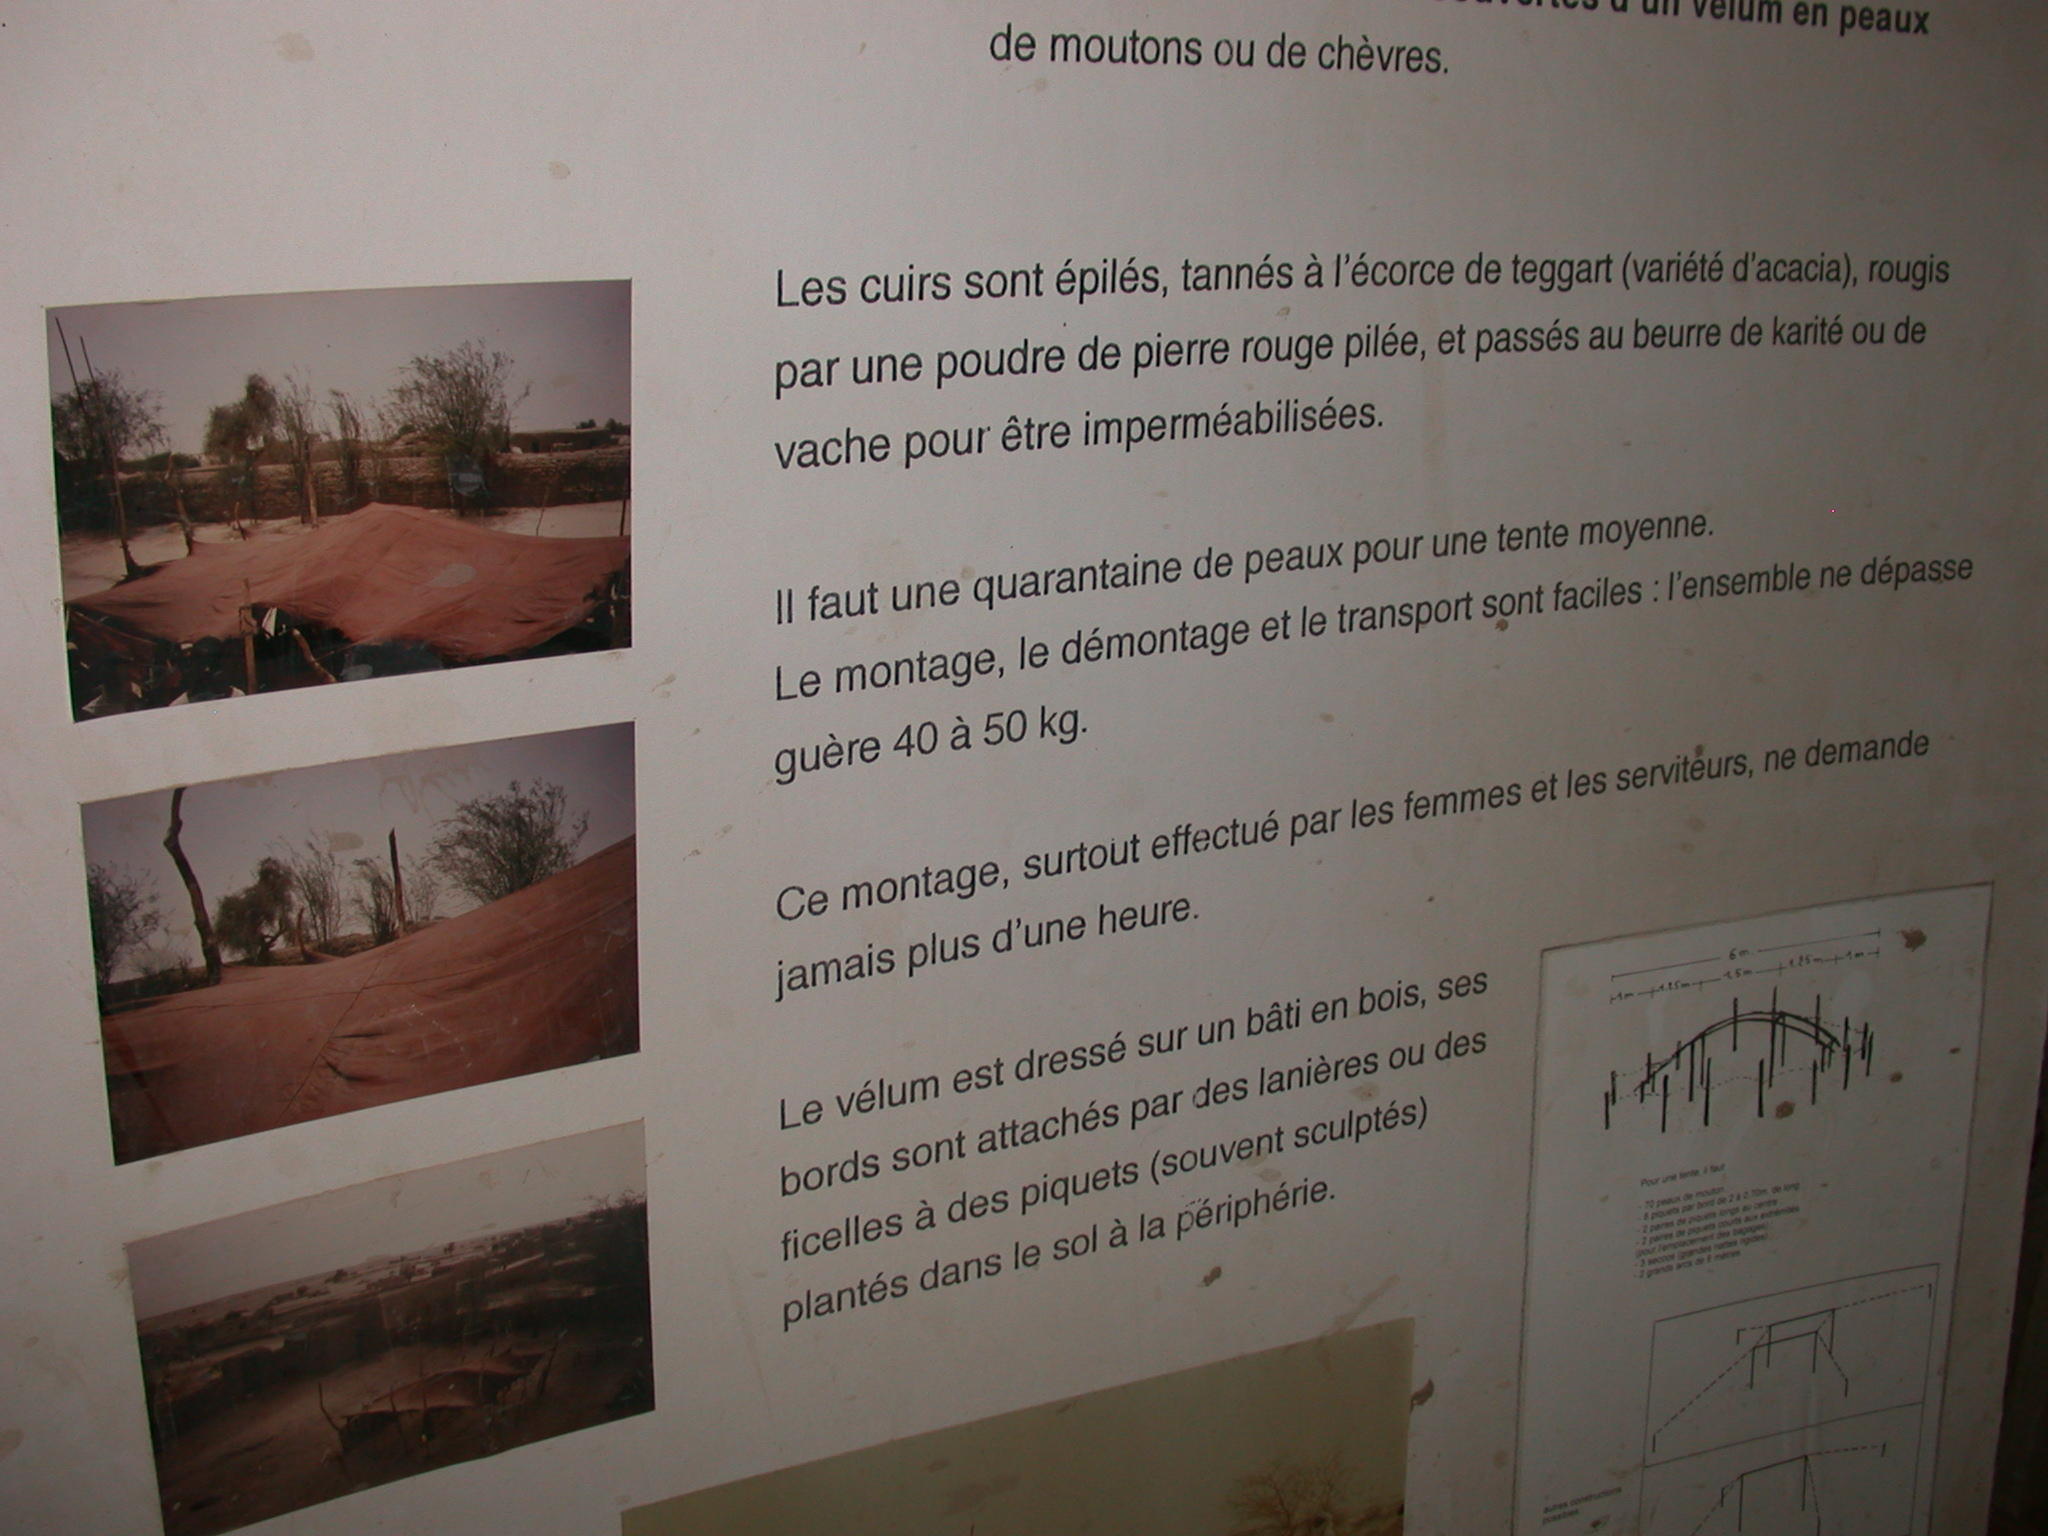 Description of Tuareg Tents, Part II, Timbuktu Ethnological Museum, Timbuktu, Mali